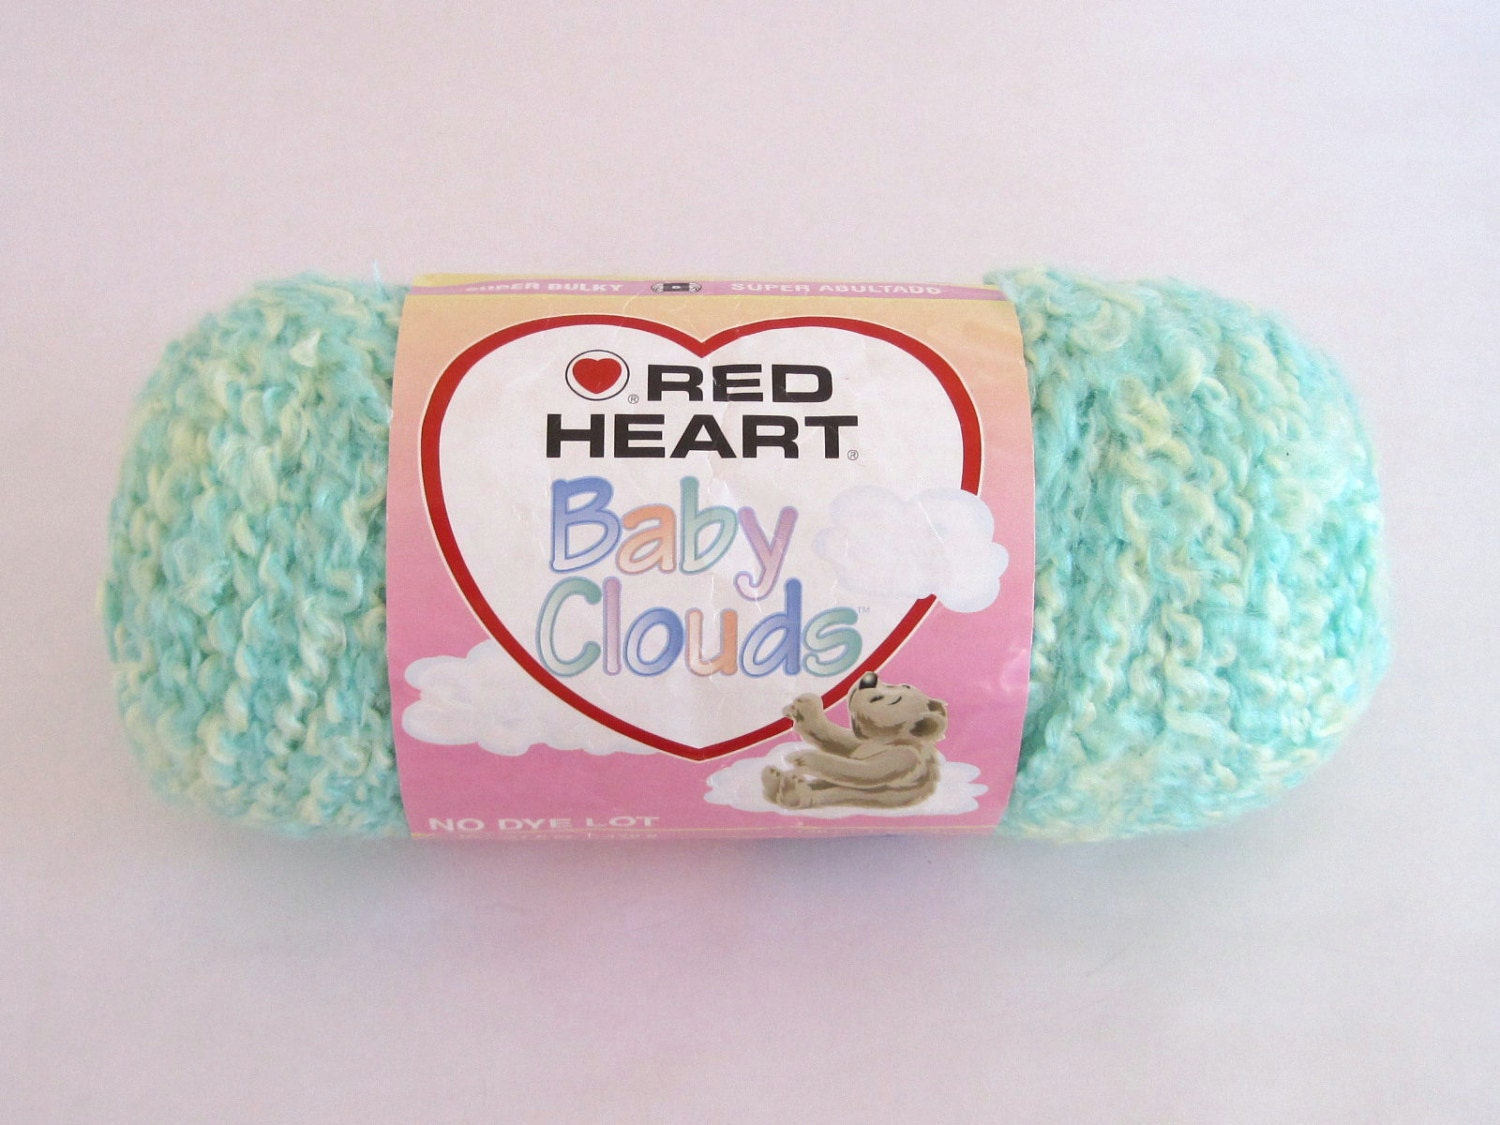 Knitting Patterns For Baby Clouds Yarn : Red Heart Baby Clouds Green Yellow Yarn. Lion by TalicakeCrochet